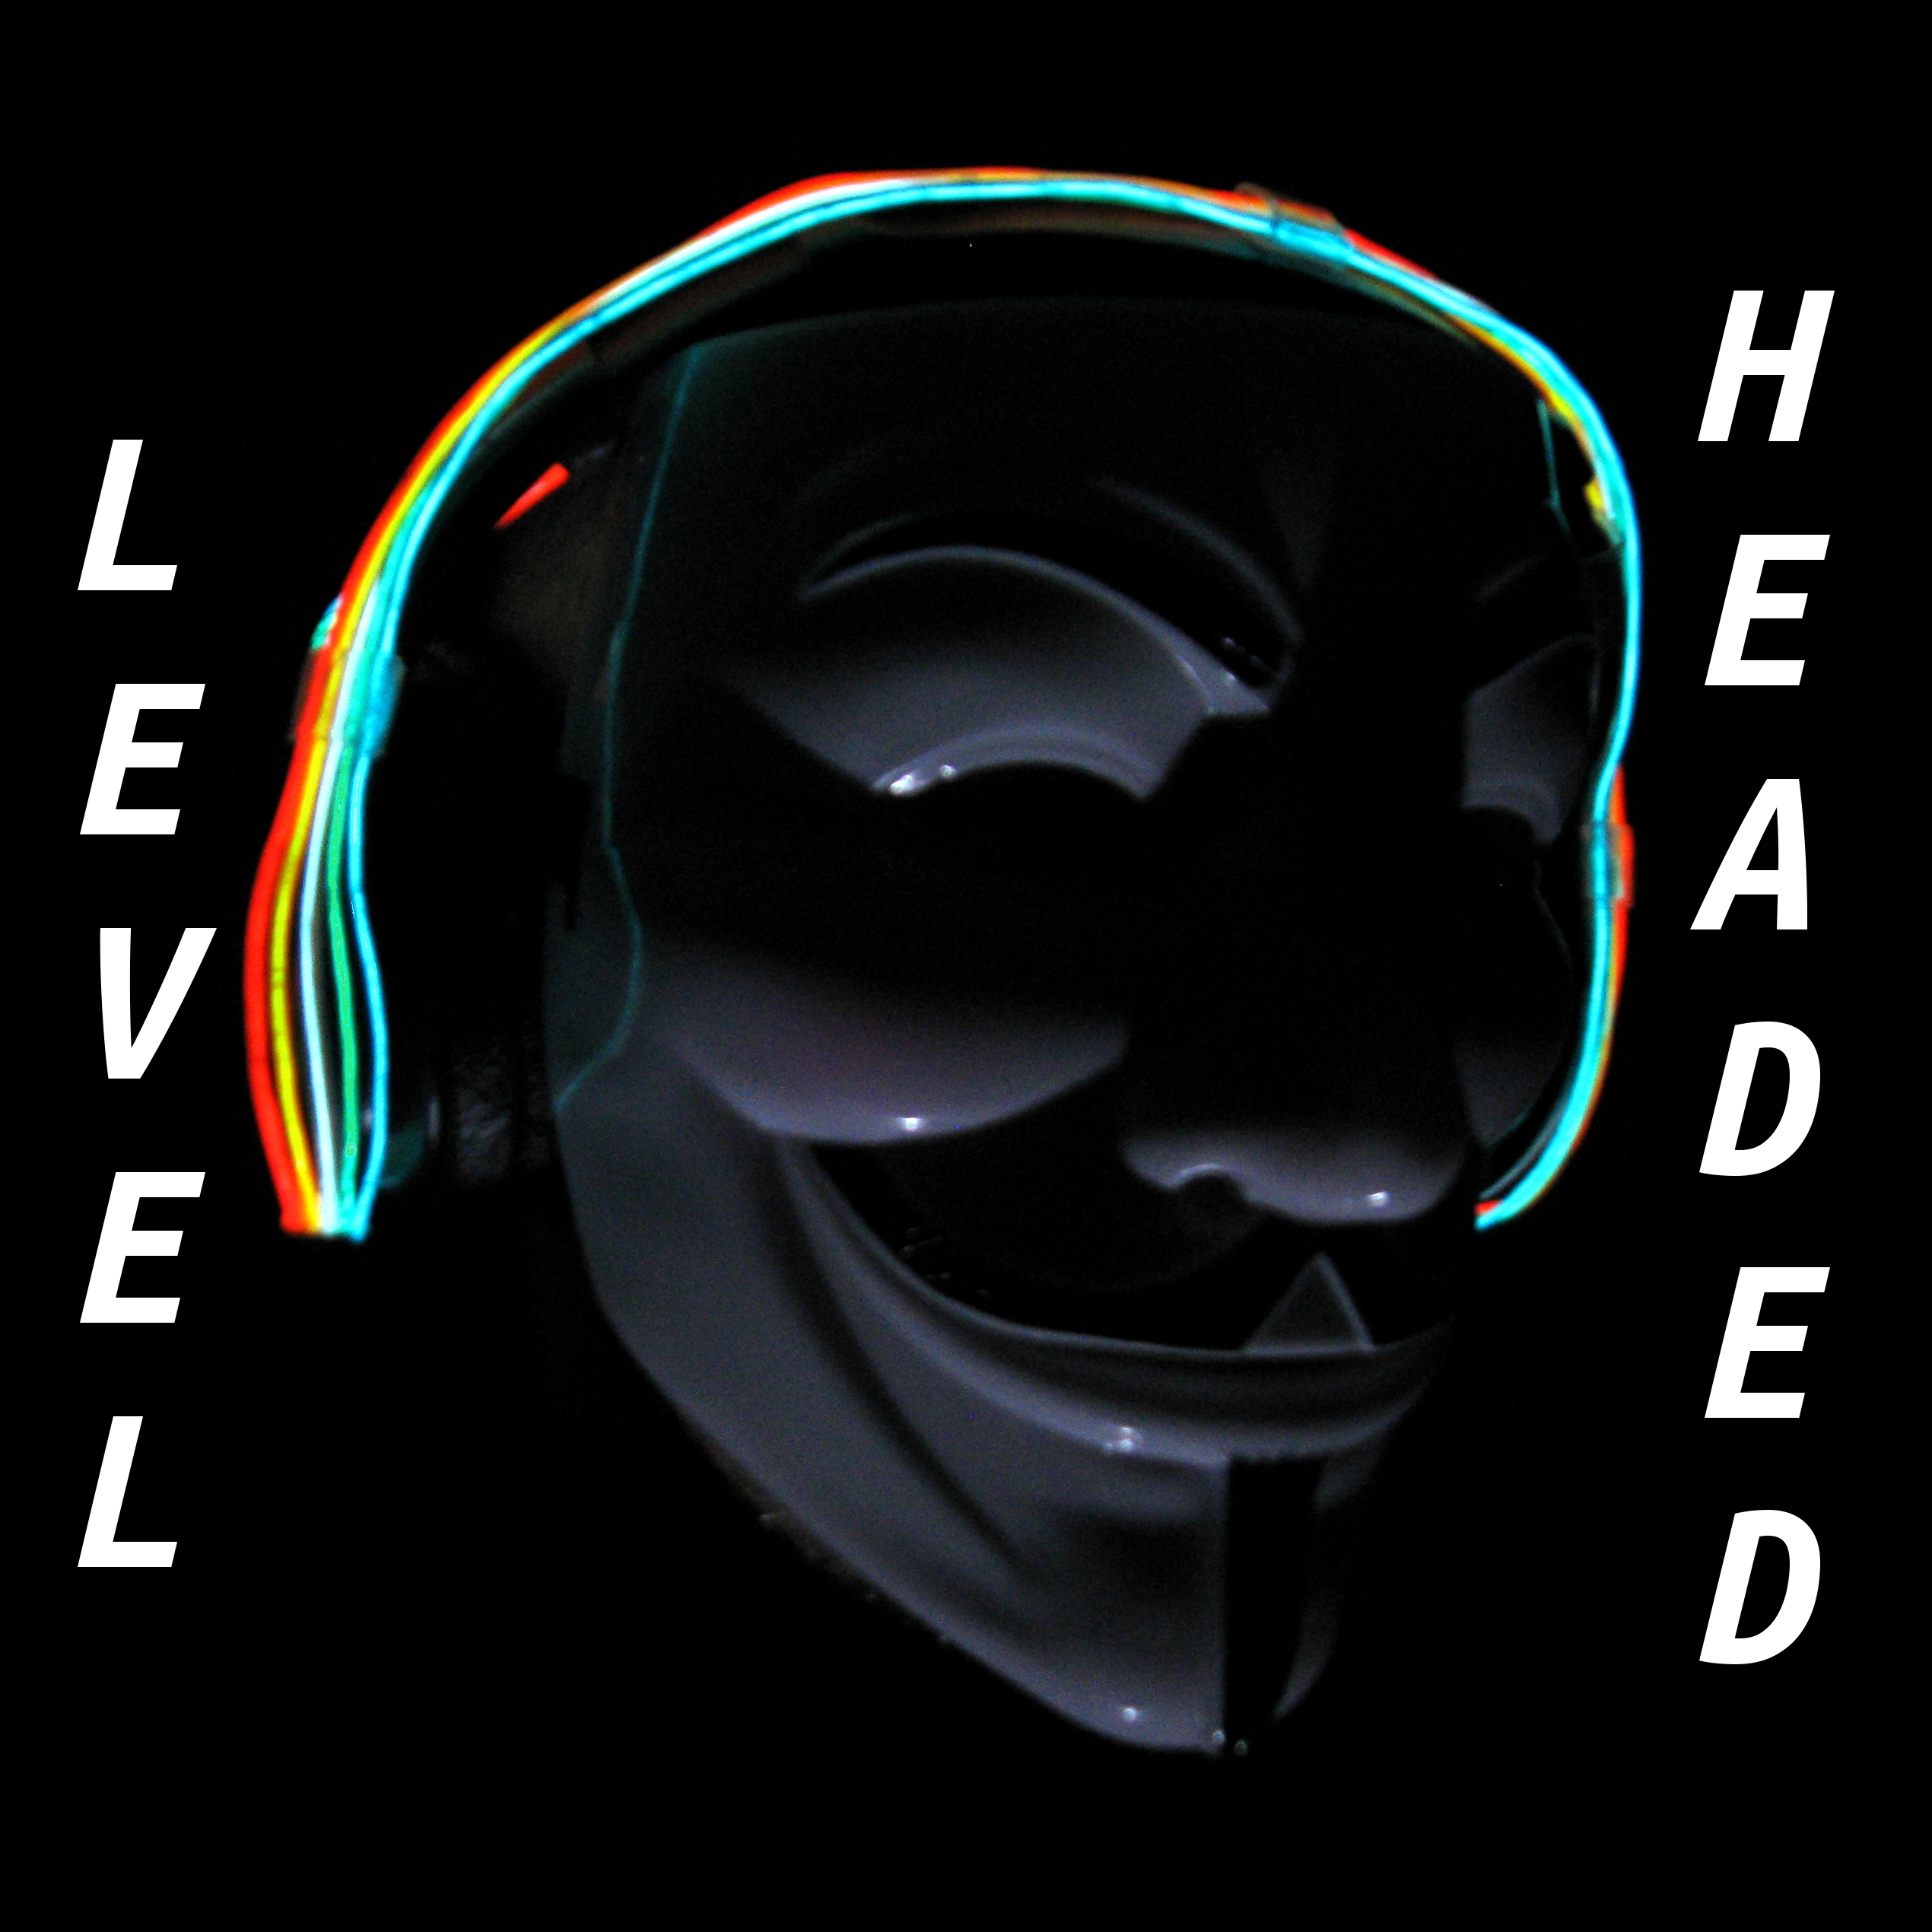 LEVEL HEADED - EL WIRE HEADPHONES